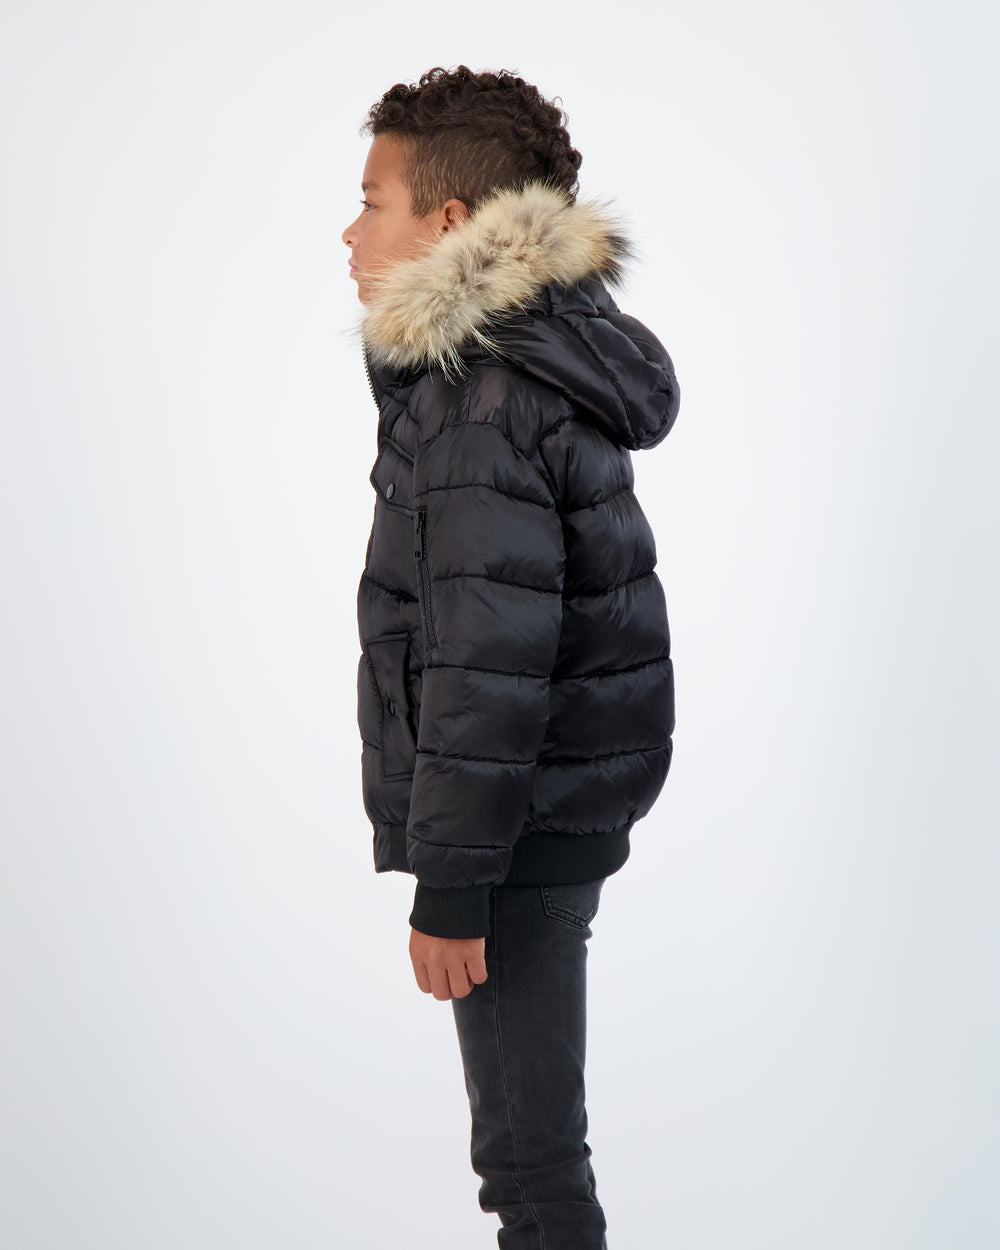 Scotch Bonnet jacket Jellybeanzkids Scotch Bonnet Matte Black Bomber with Natural Fur